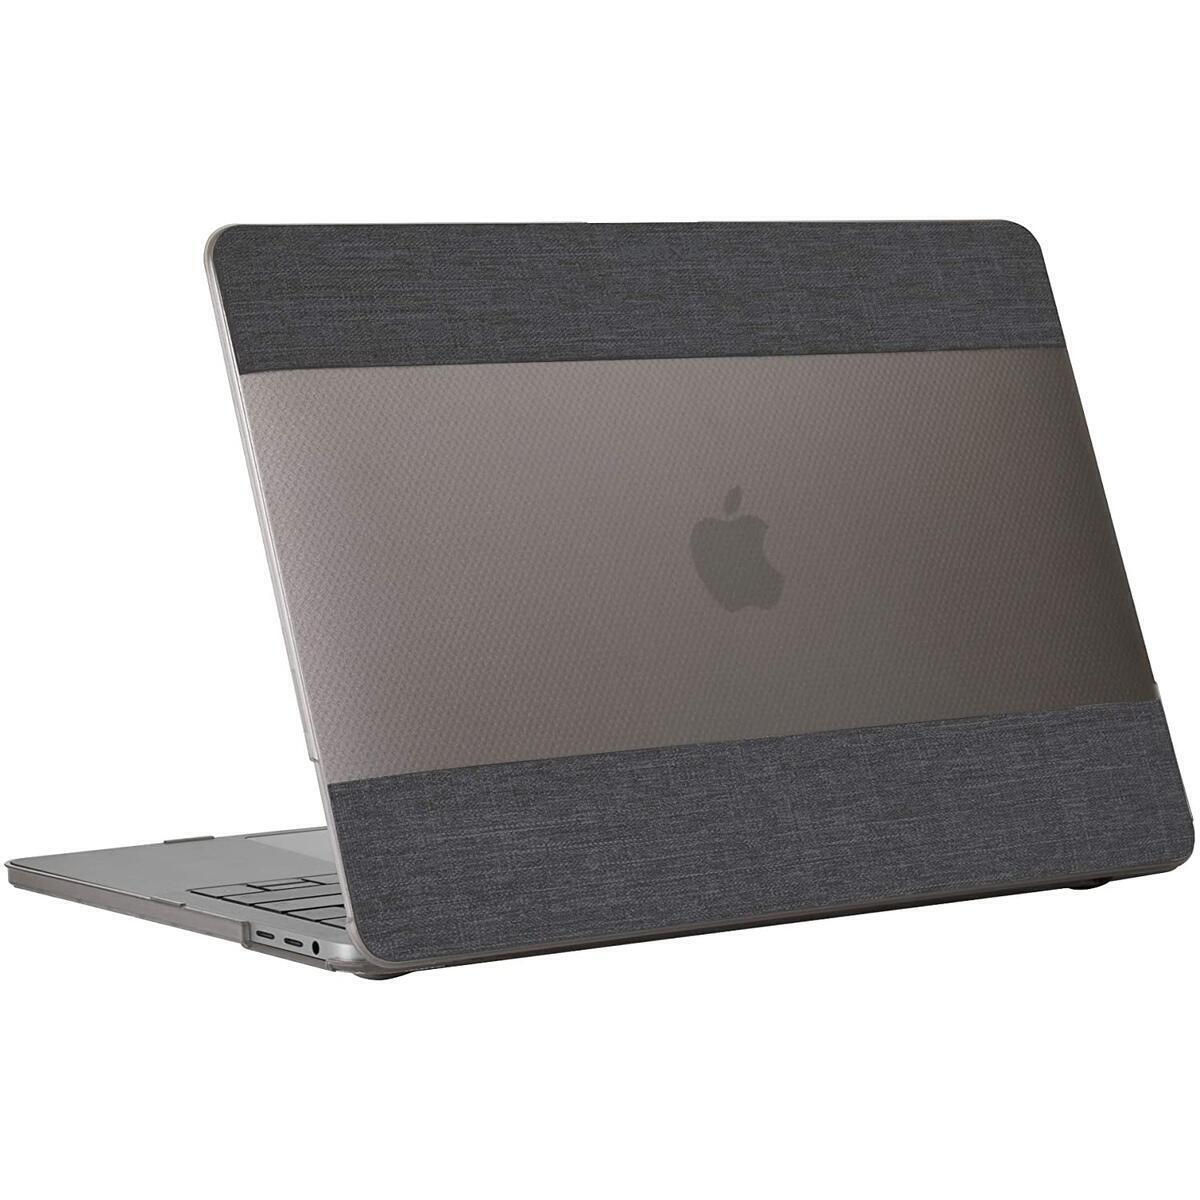 PROXA MacBook Pro 13 inch Case Released 2020, Creator Series, Hardshell Case Cover for MacBook Pro 13 inch 2020, A2289/A2251-Space Grey